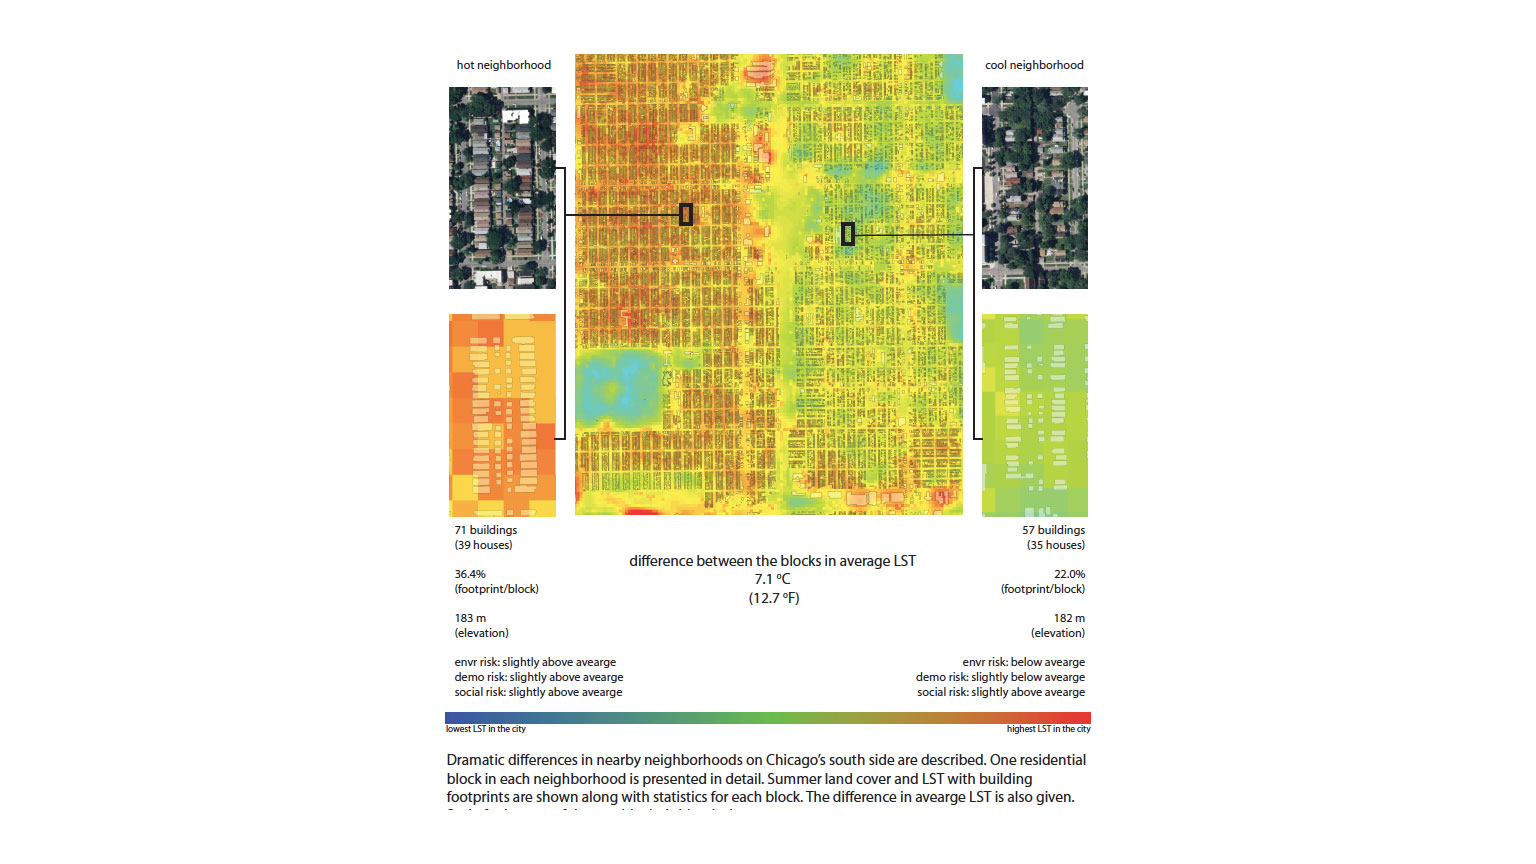 Heat map of a neighborhood comparing heat influenced by physical design.